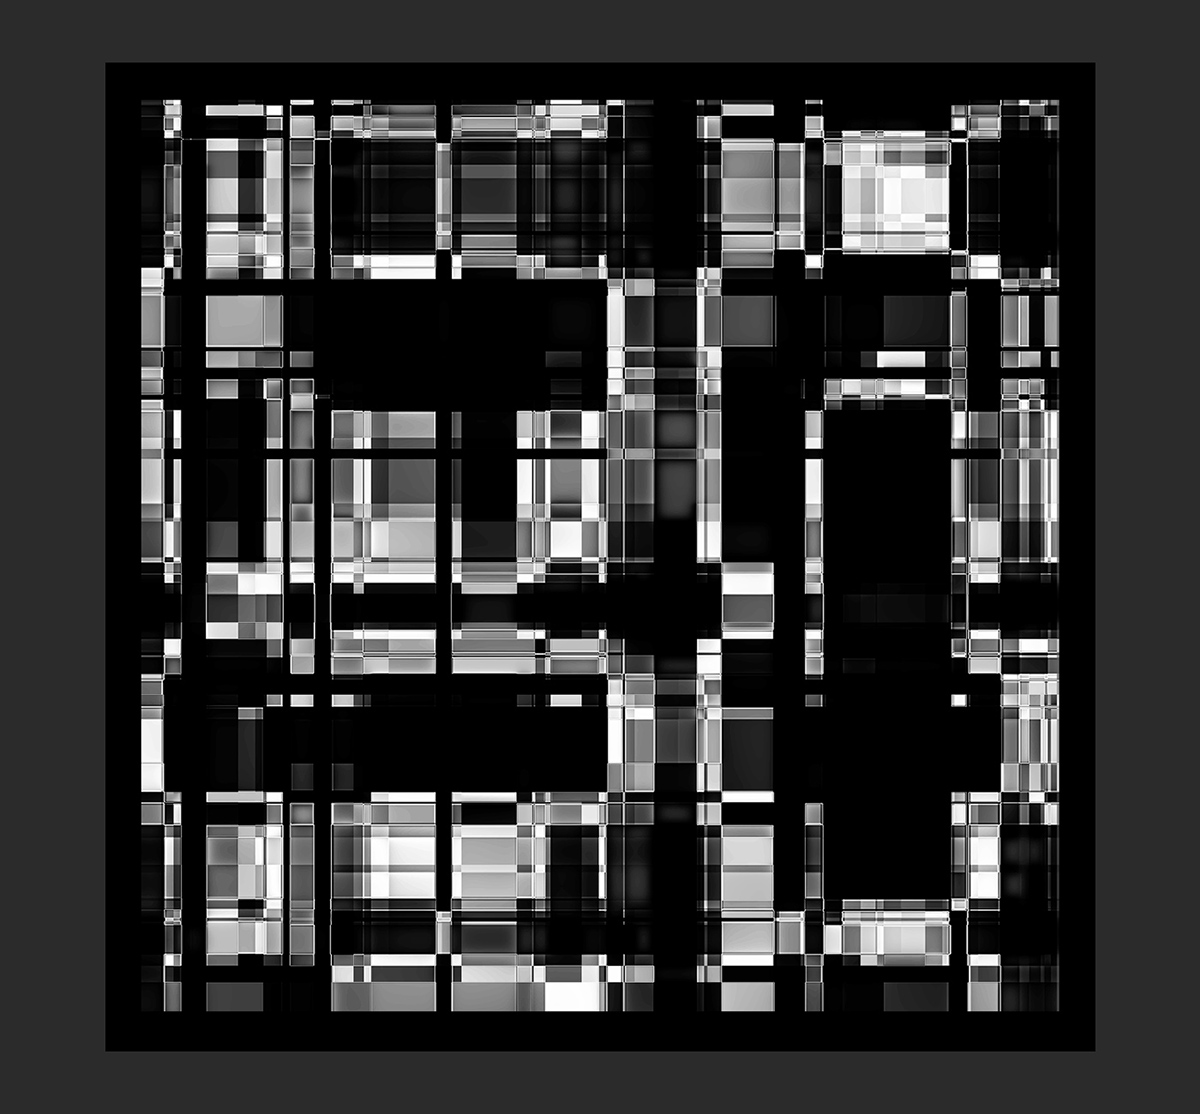 abstract geometric distortion filters